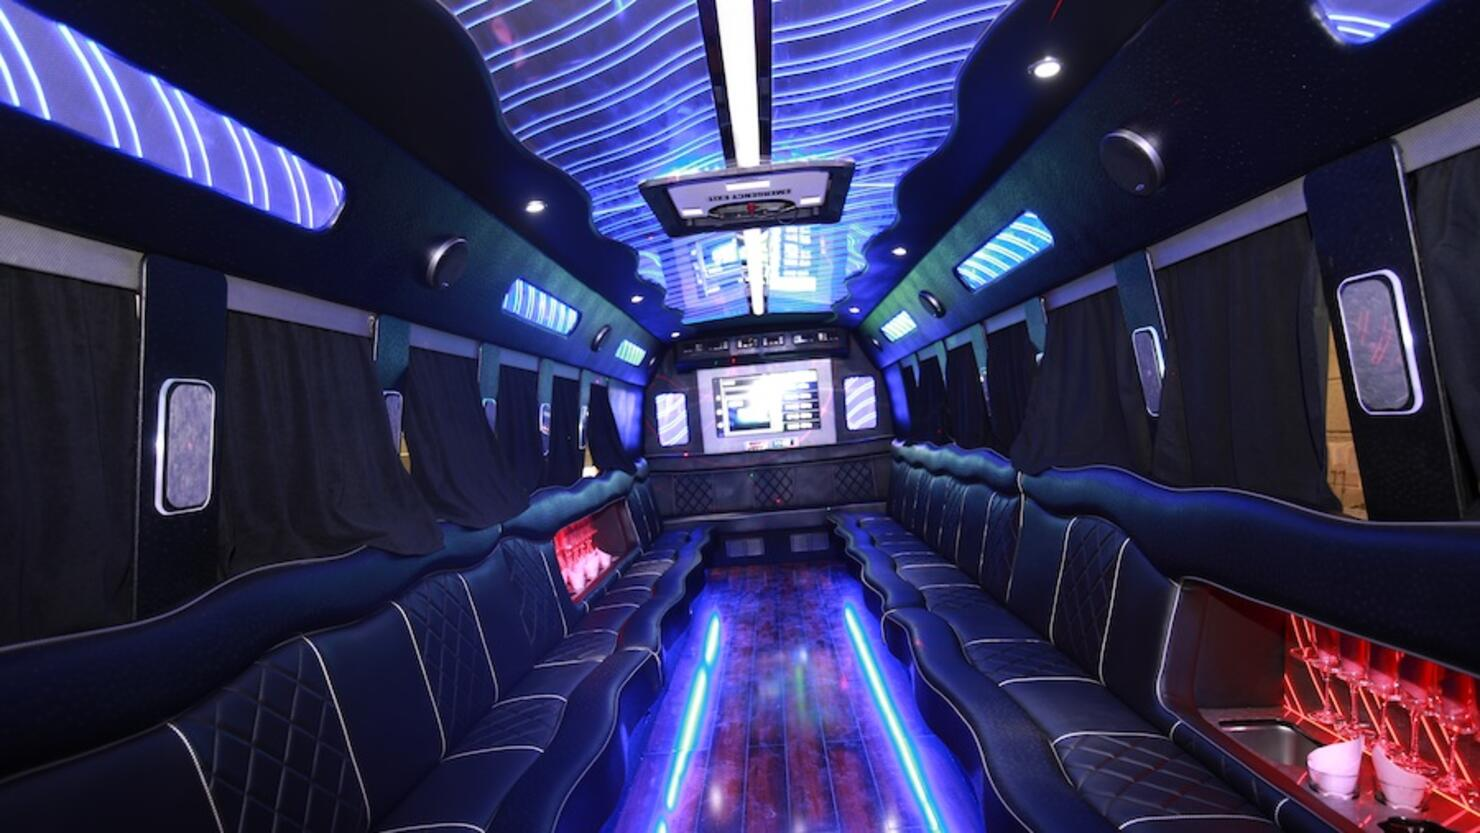 The Inside Of A Party Bus